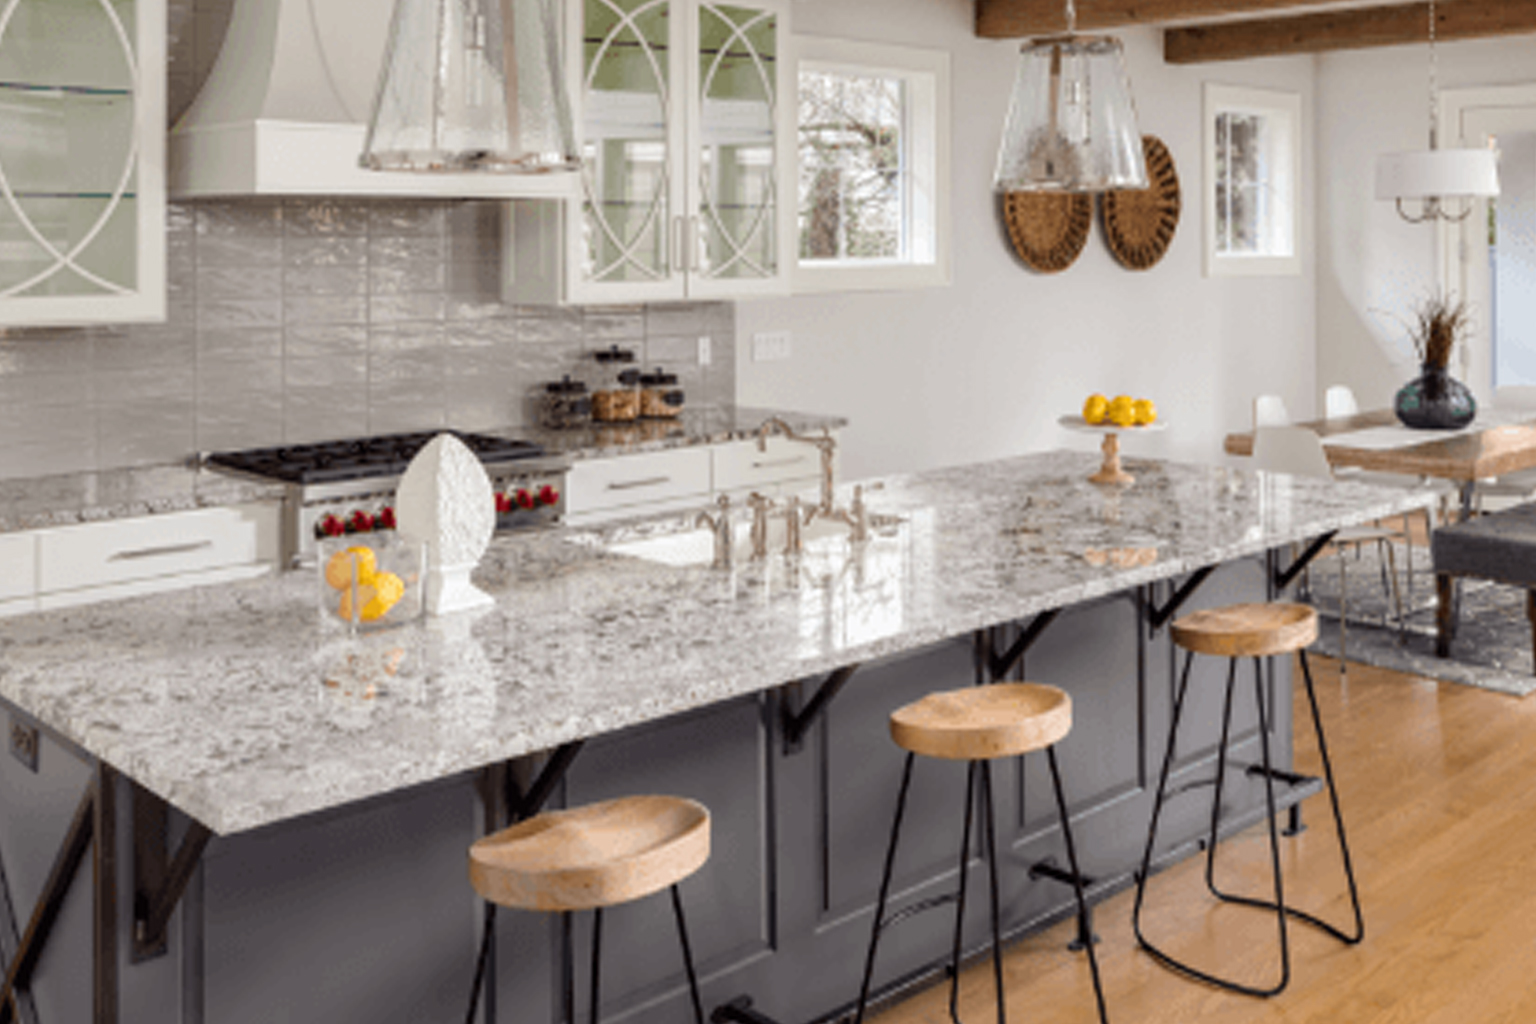 light kitchen design with gold undertones and bench seats